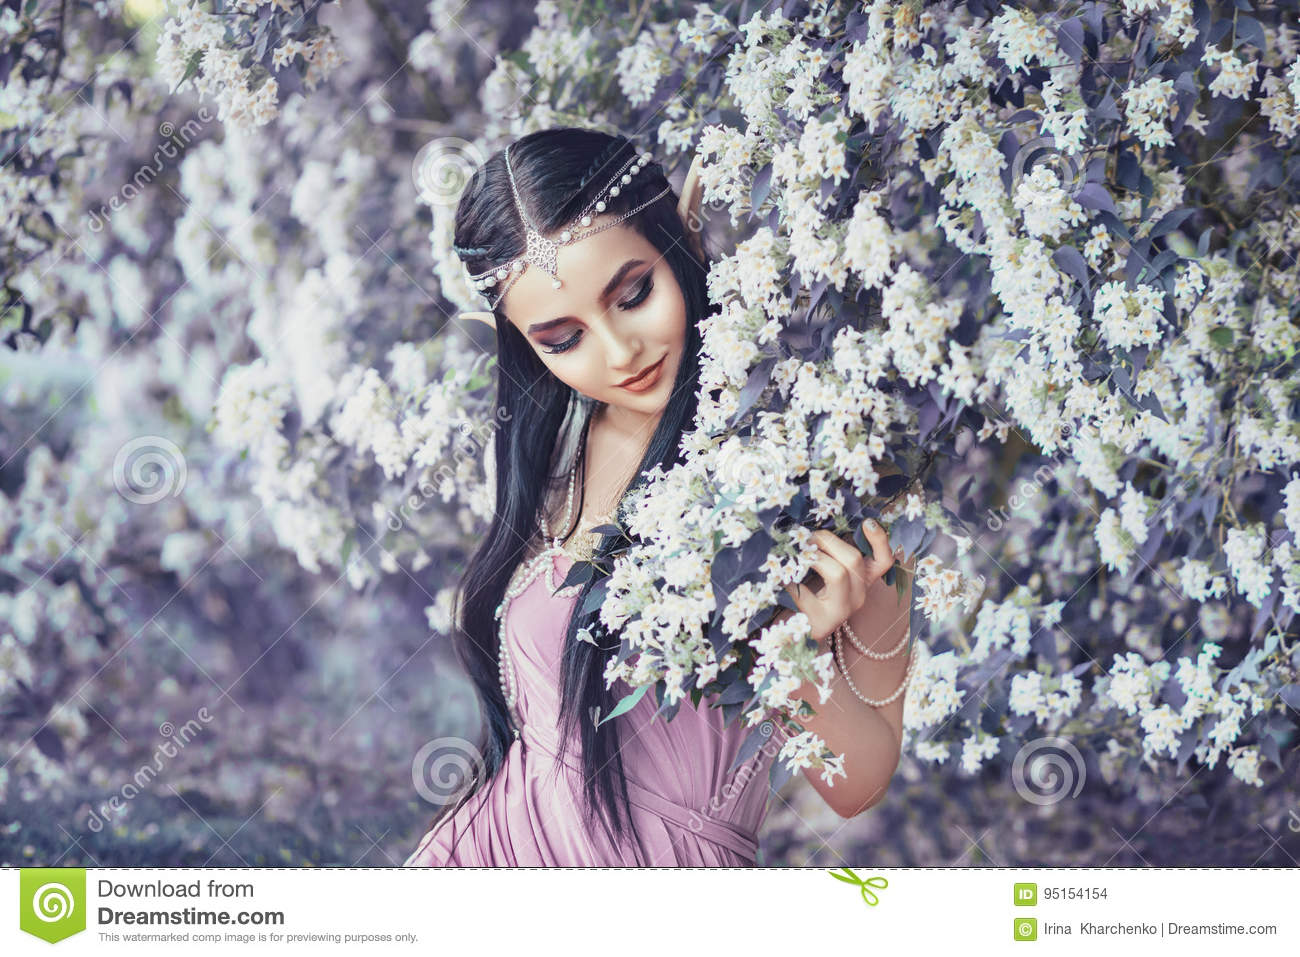 Download Portrait Of An Elf In A Blooming Garden Stock Photo - Image of mysticism, elegance: 95154154